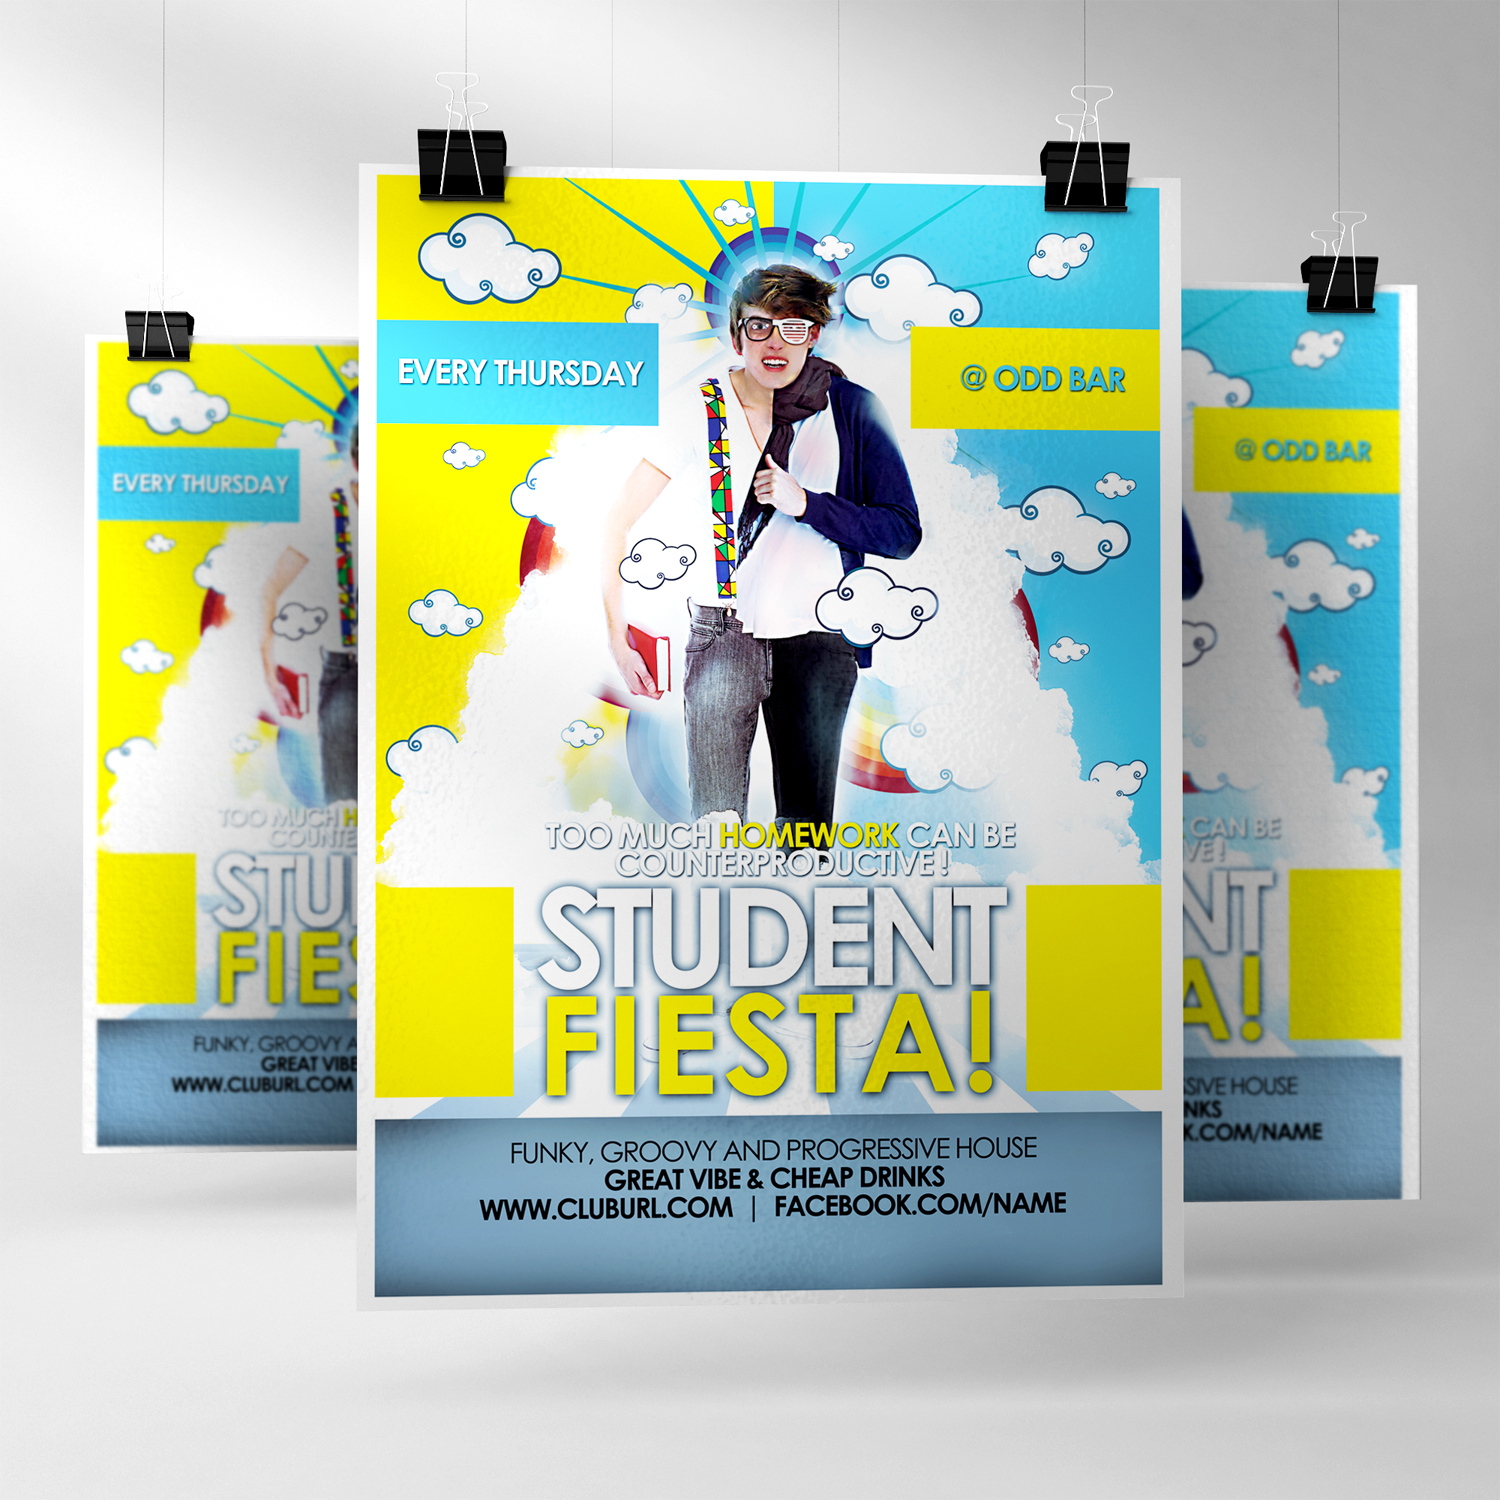 Poster design for students -  Student Fiesta V 1 Poster By Tomekortyl